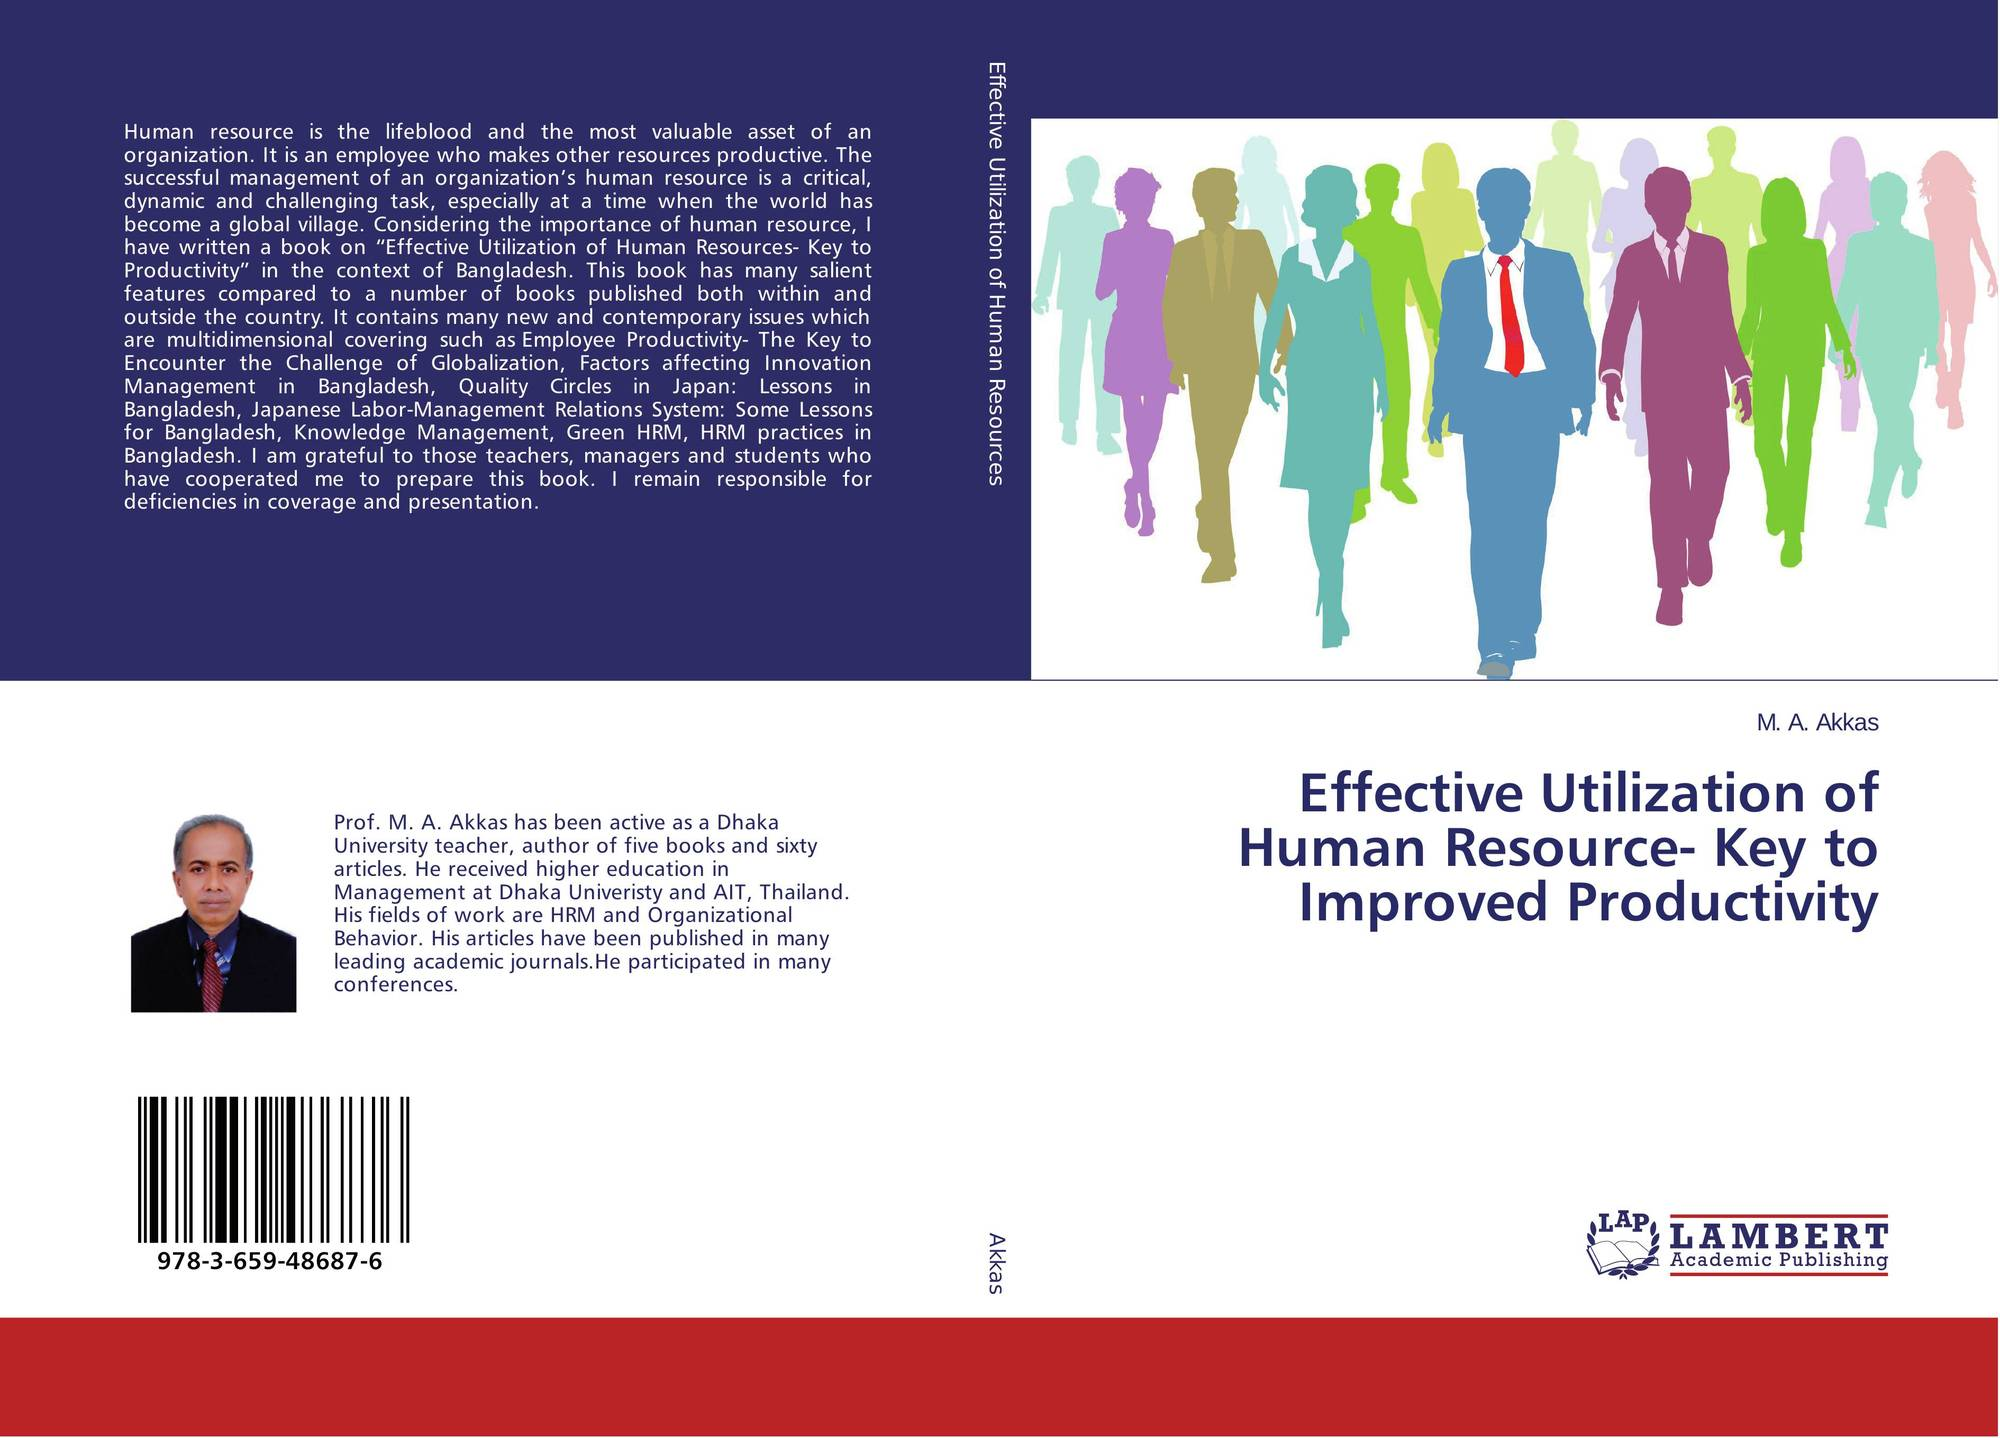 the effectiveness of human resource management Human resources strategy is tied increasingly to the strategic success of a company as a whole, but many business owners still think of hr's effectiveness as unquantifiable the success or failure of an hr strategy can be measured and analyzed, and by analyzing what the metrics have to say, hr can demonstrate its strategic importance.